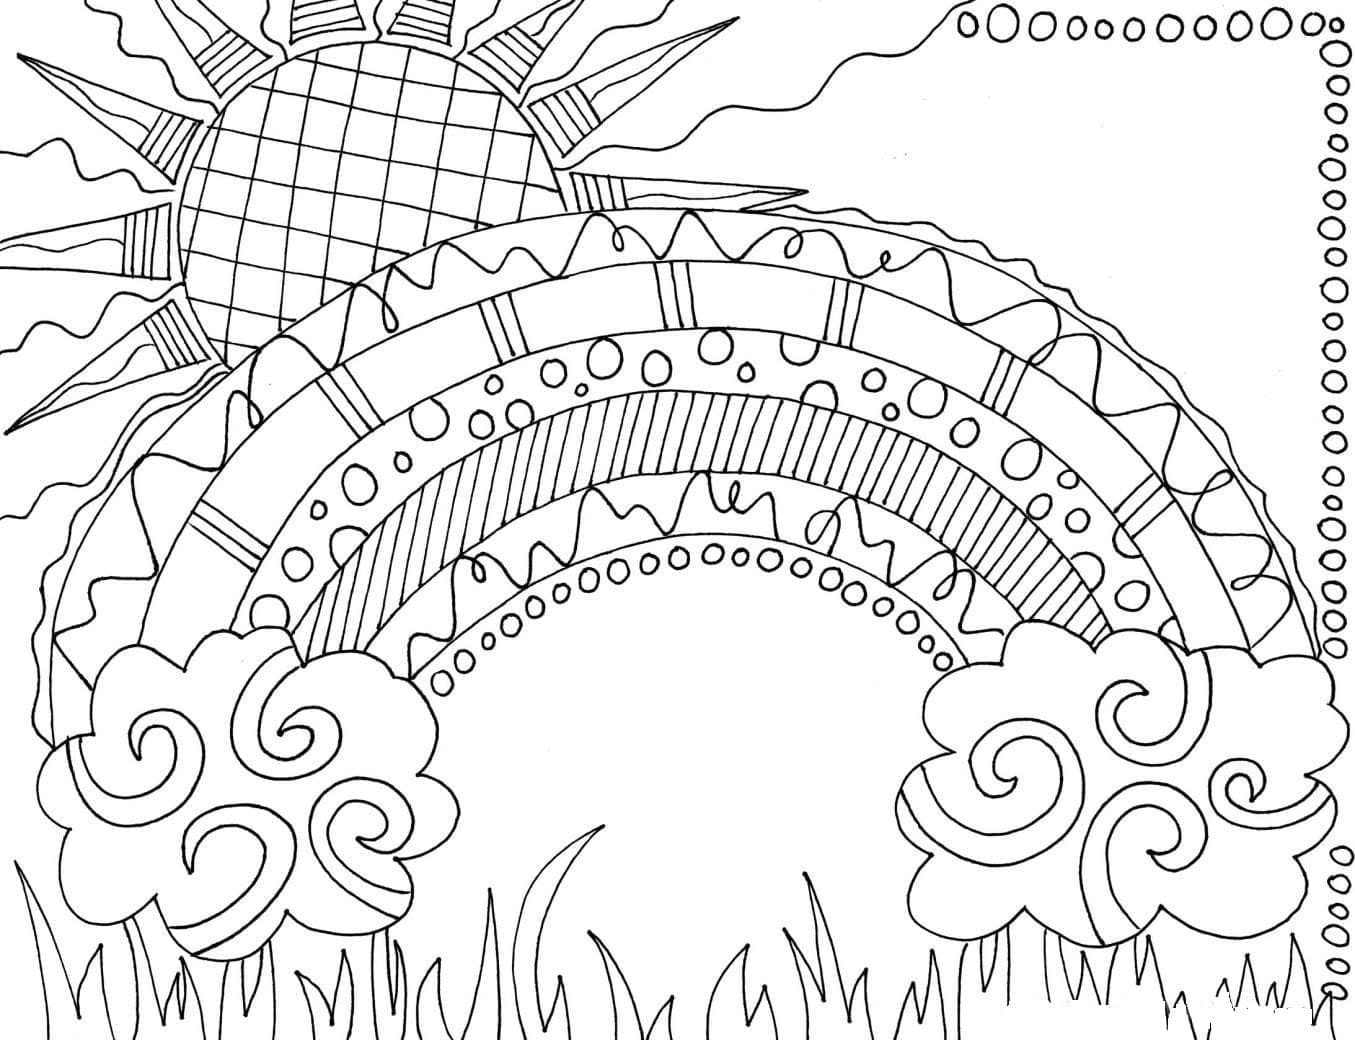 printable rainbow coloring page hard and difficult to color adult rainbow coloring pages printable rainbow coloring page